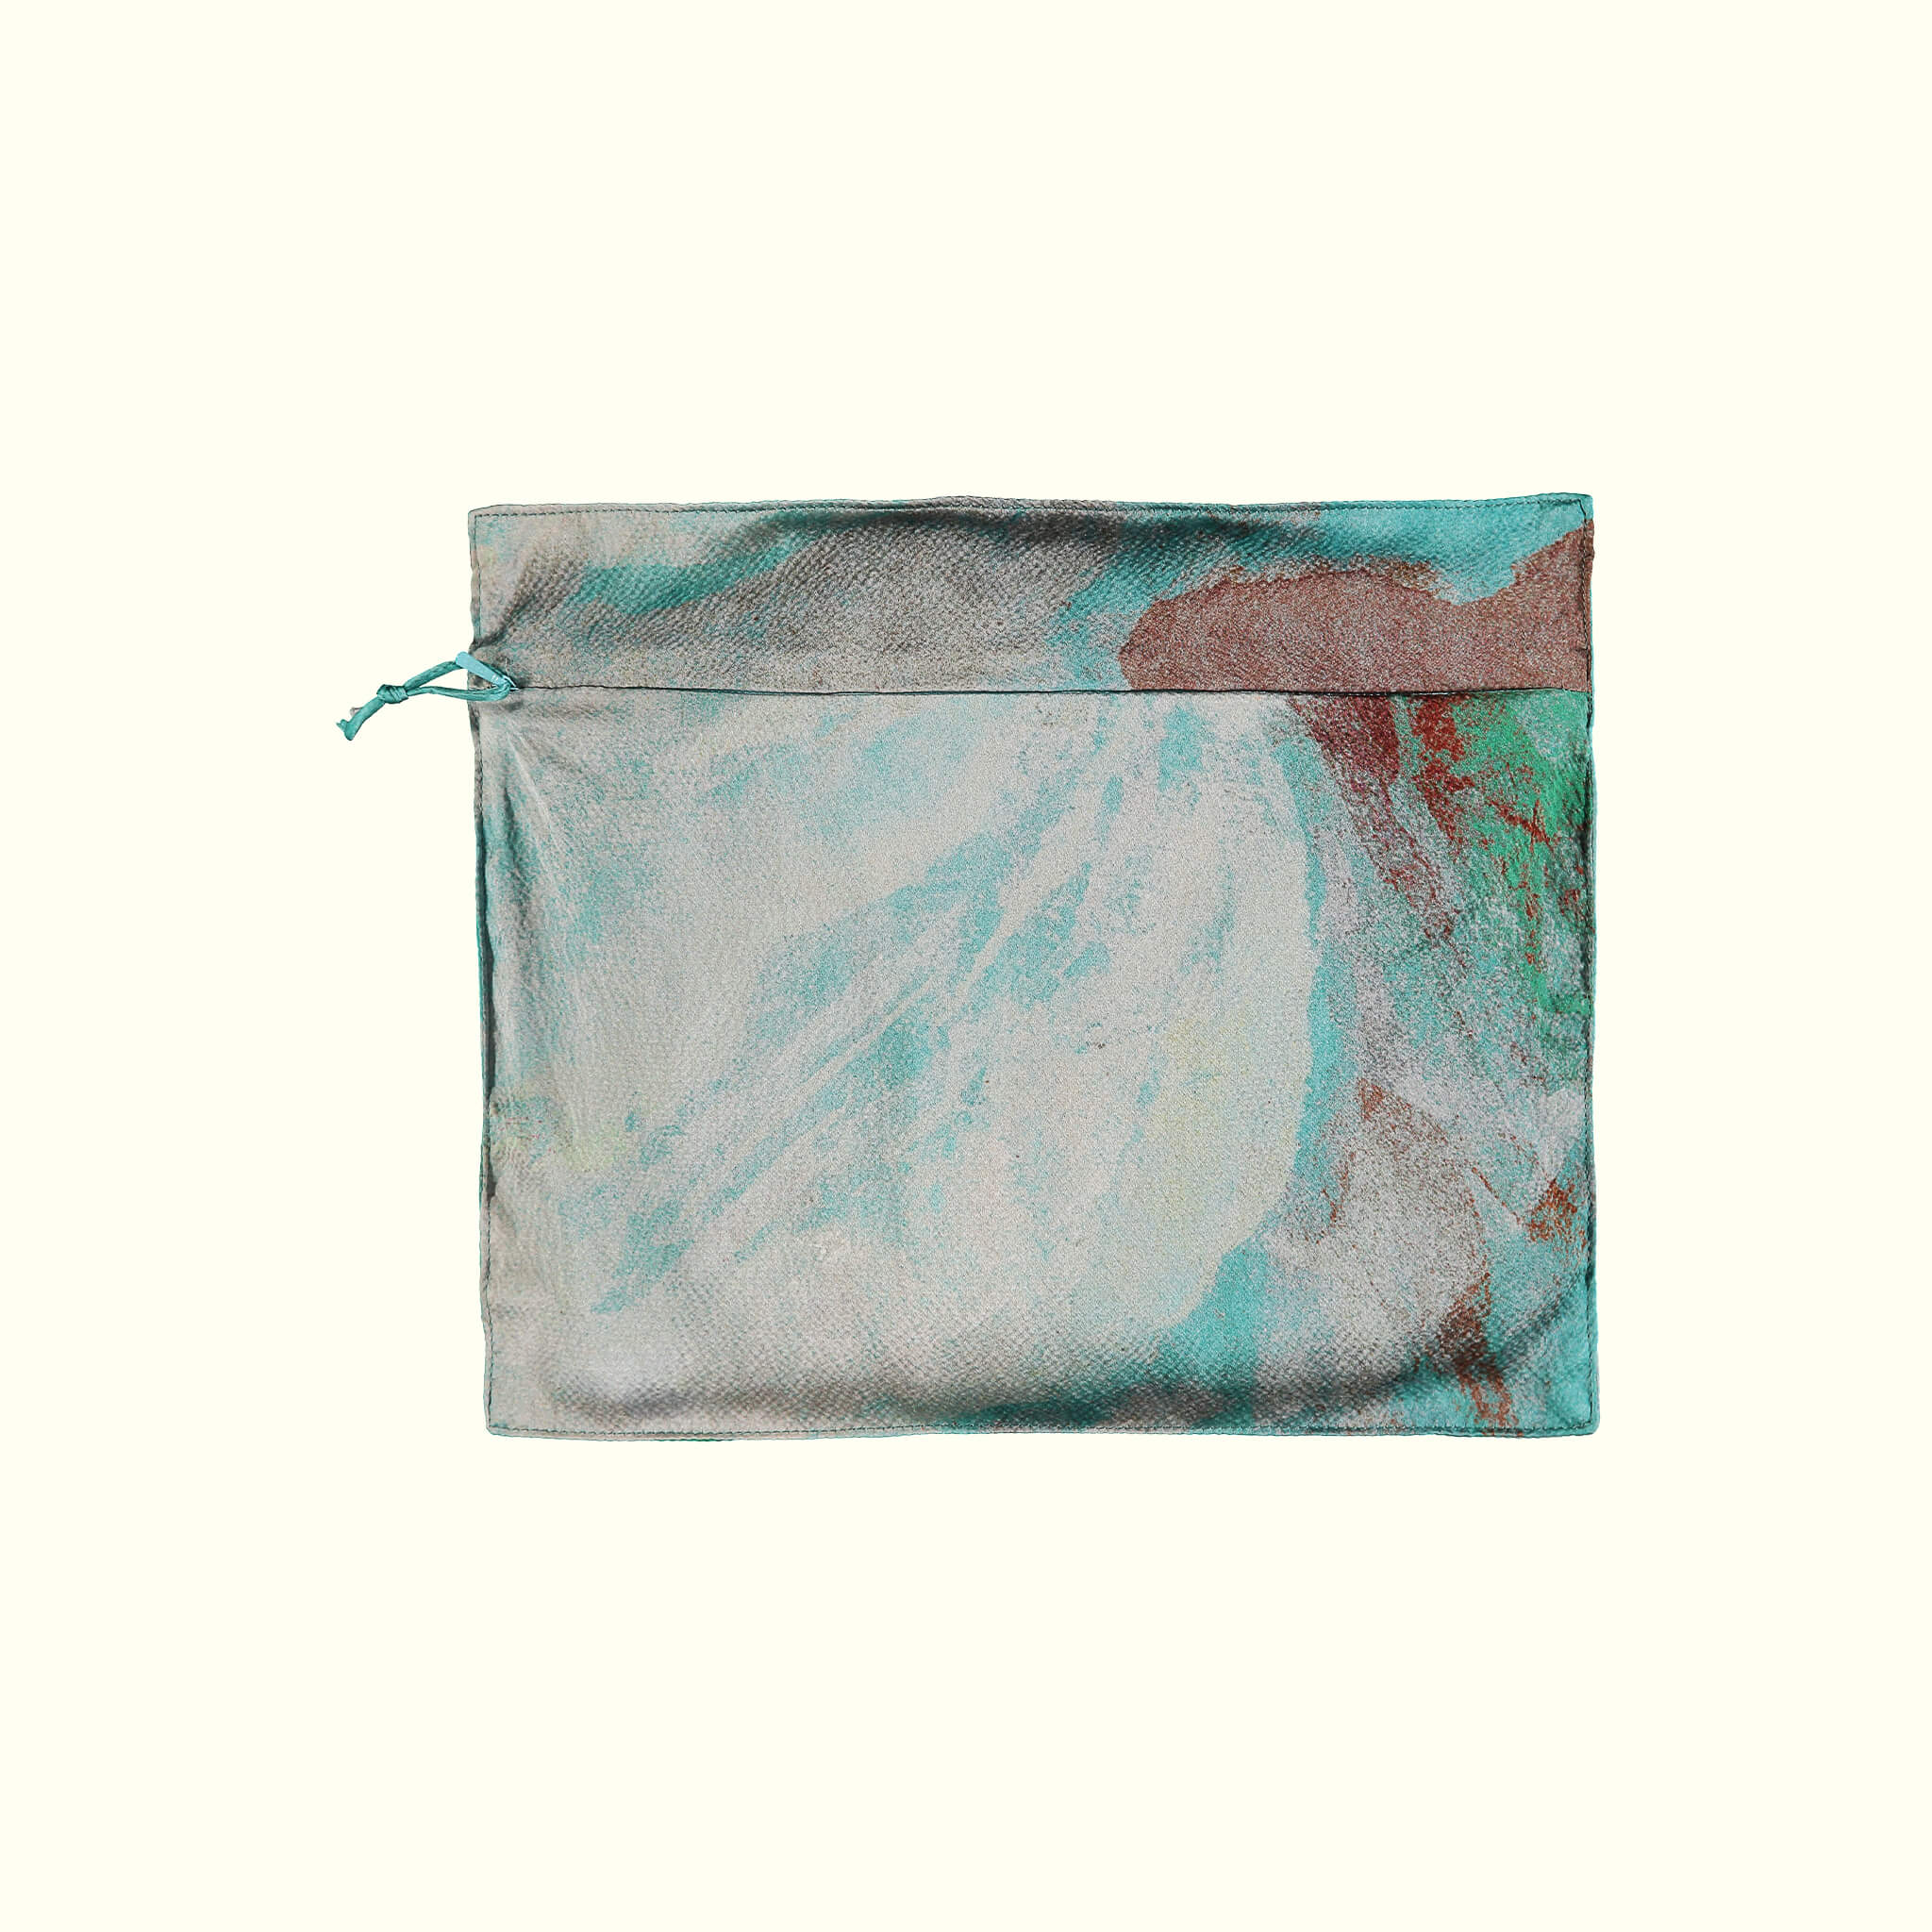 A luxury British silk robe carry bag by GVE  in aqua Conversation print design.